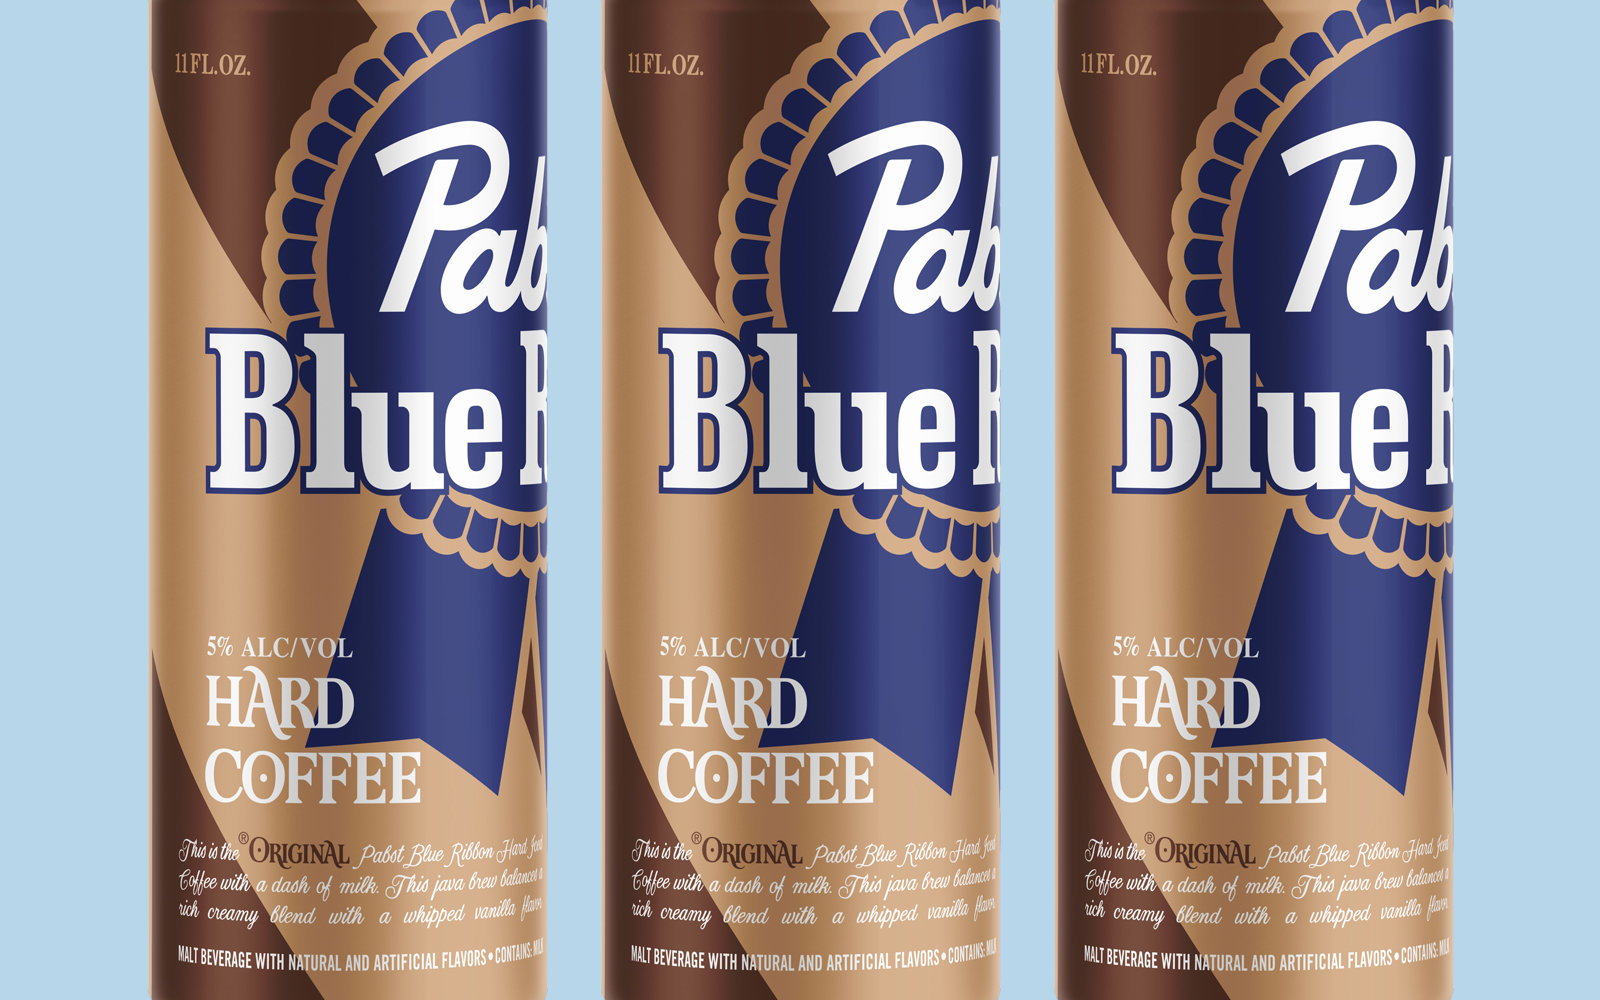 Pabst Blue Ribbon's New Hard Coffee Tastes Like an Alcoholic Version of Yoo-hoo